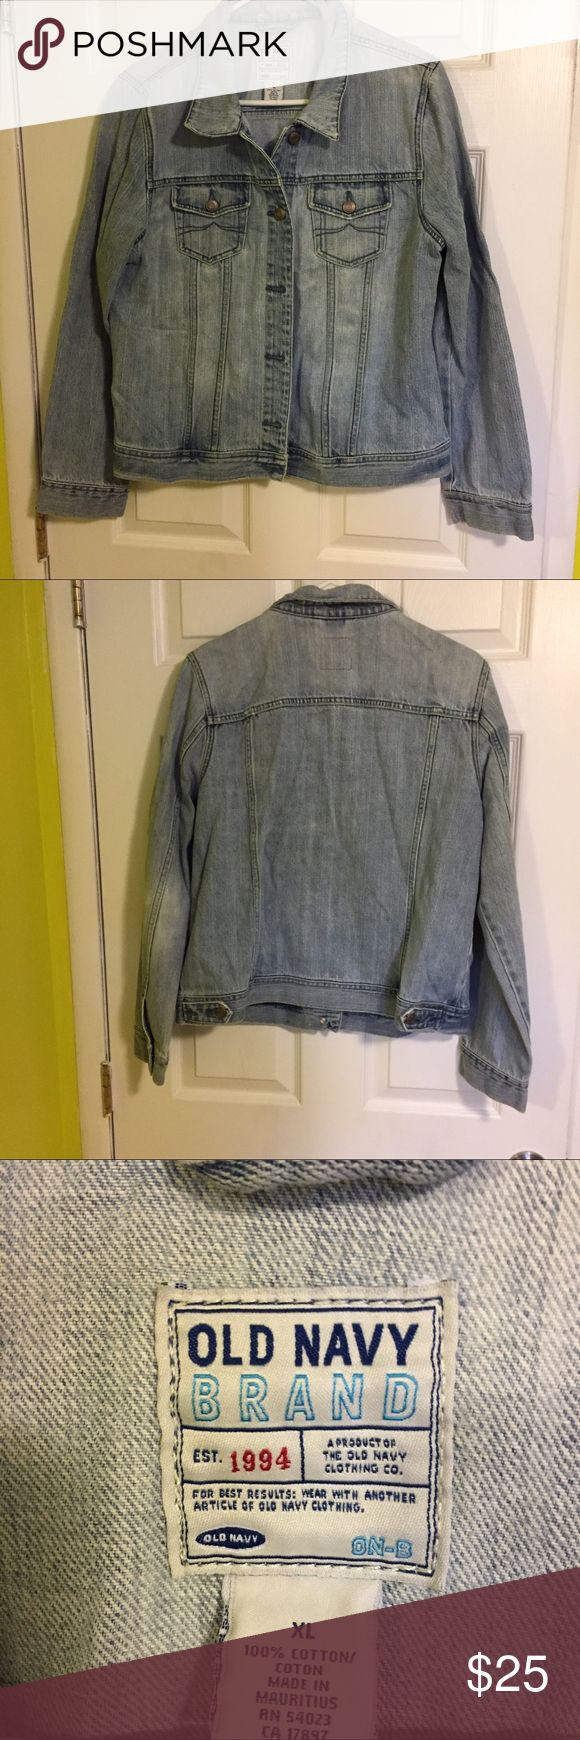 Old Navy jean jacket Like new Old Navy jean jacket. Lighter denim color. Smoke free home. Old Navy Jackets & Coats Jean Jackets